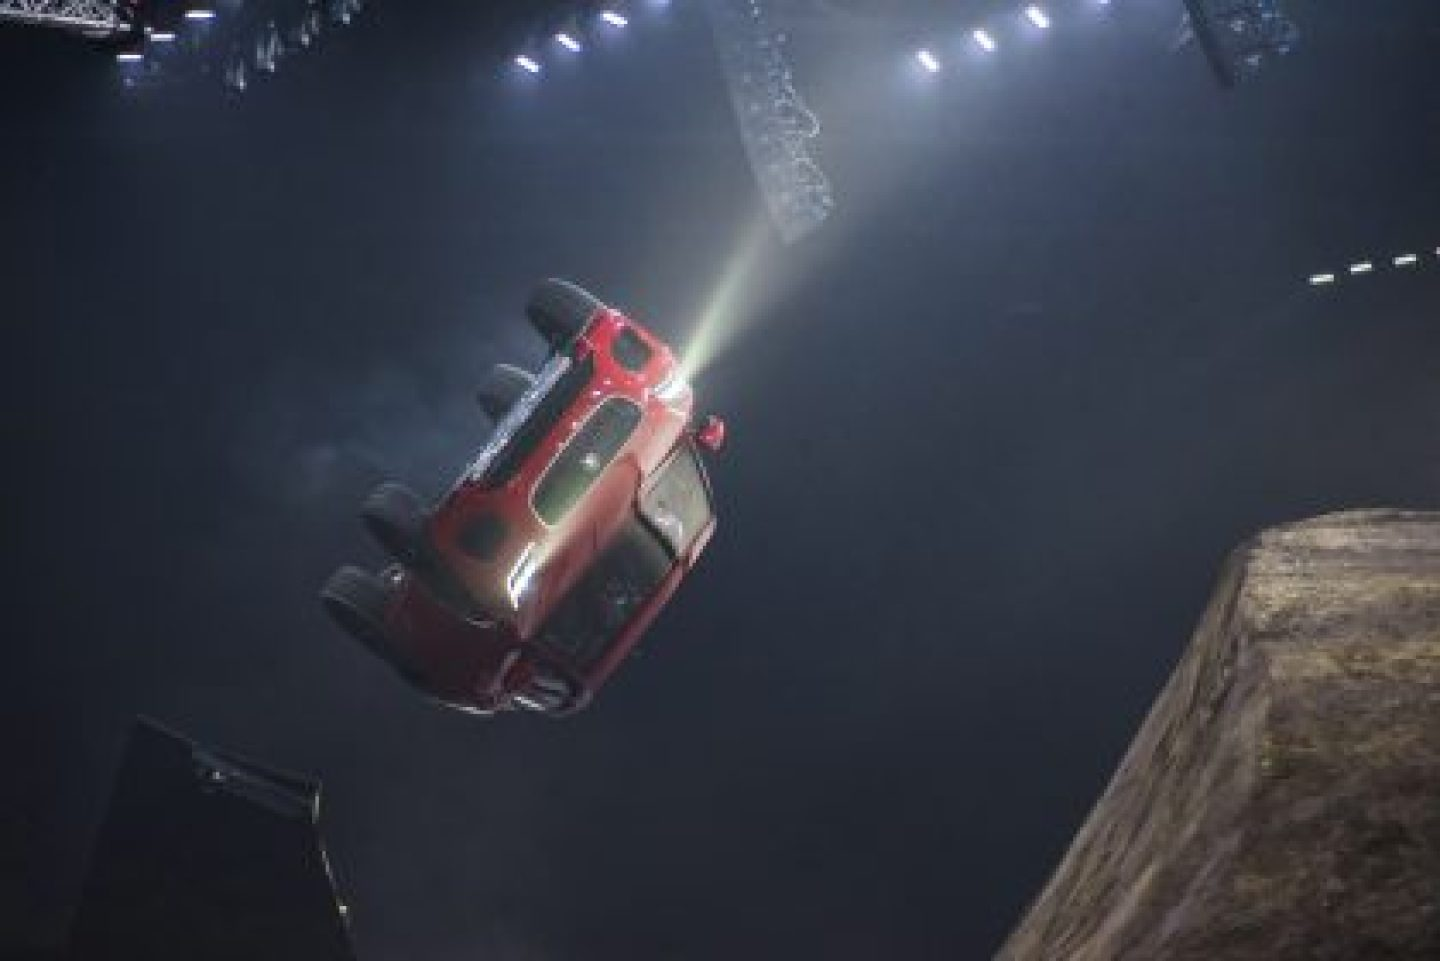 The new Jaguar E-PACE has set an official GUINNESS WORLD RECORDS™ title during its world premiere. The compact performance SUV leapt into the record books with a 15.3 metre-long jump complete with a 270-degree corkscrew-like 'barrel roll'.